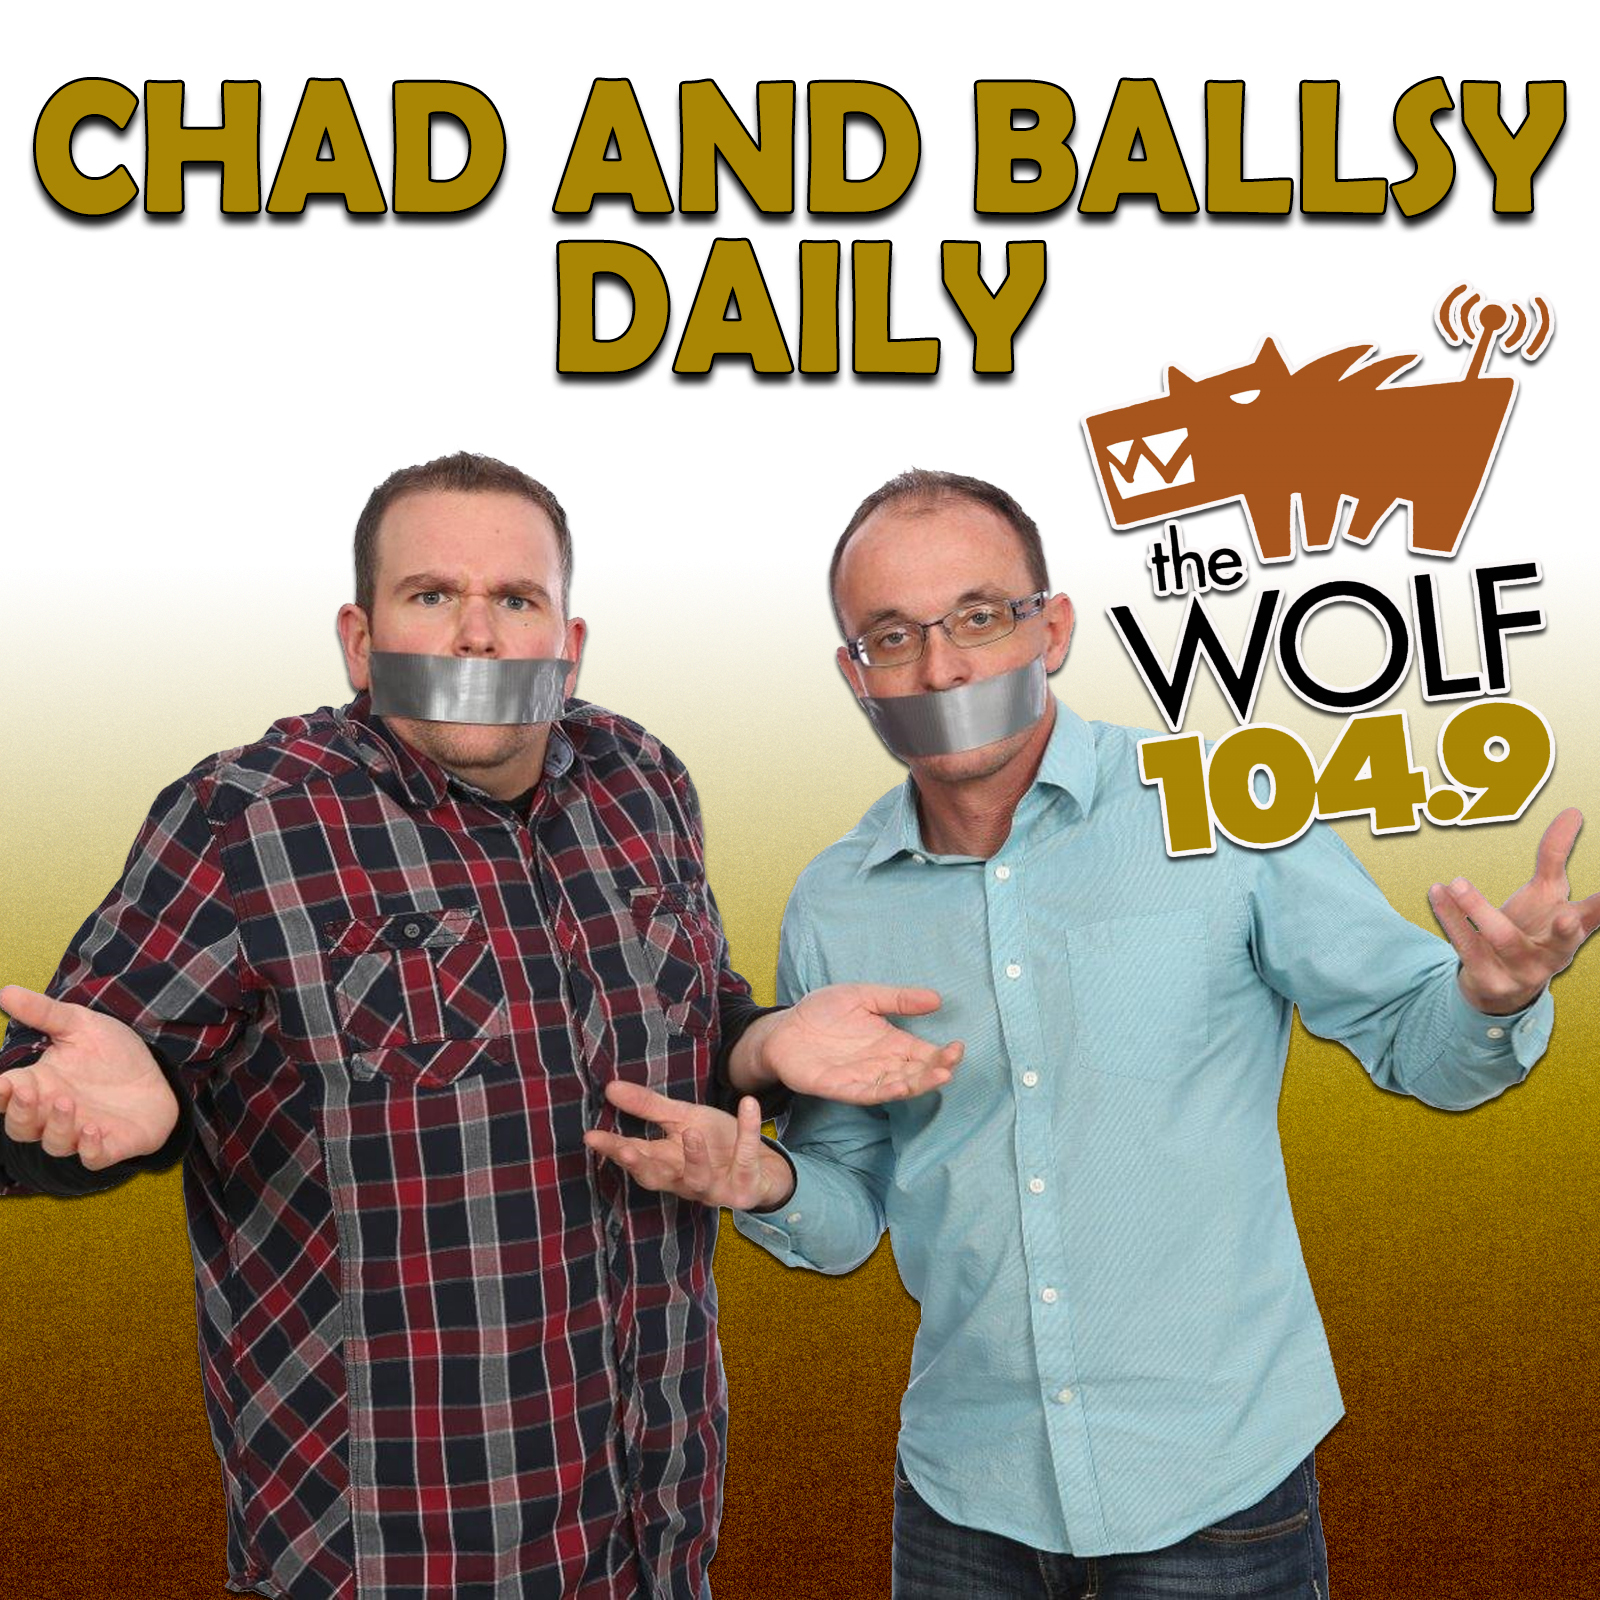 Deflated Christmas Decorations Spleens Jumping On Vasectomy Patients And Spencer Is The New Chad Ballsy Daily Podcast